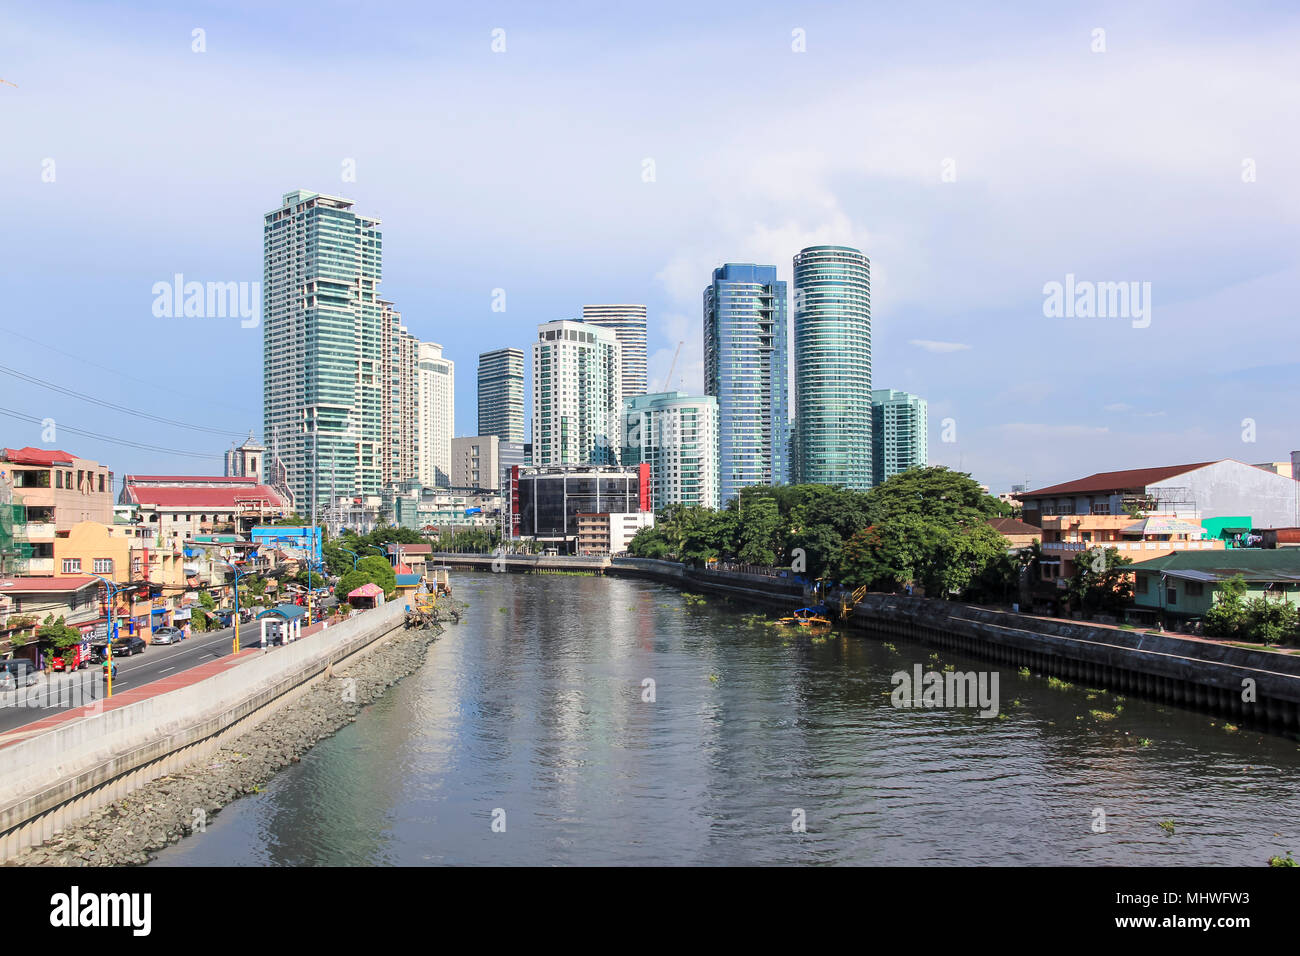 MANILA - JUNE 12: The pasig river in makati passing  by high rise condo buildings of Rockwell distrcit on June 12 2014  in Manila. The 25 kilometre Pa - Stock Image